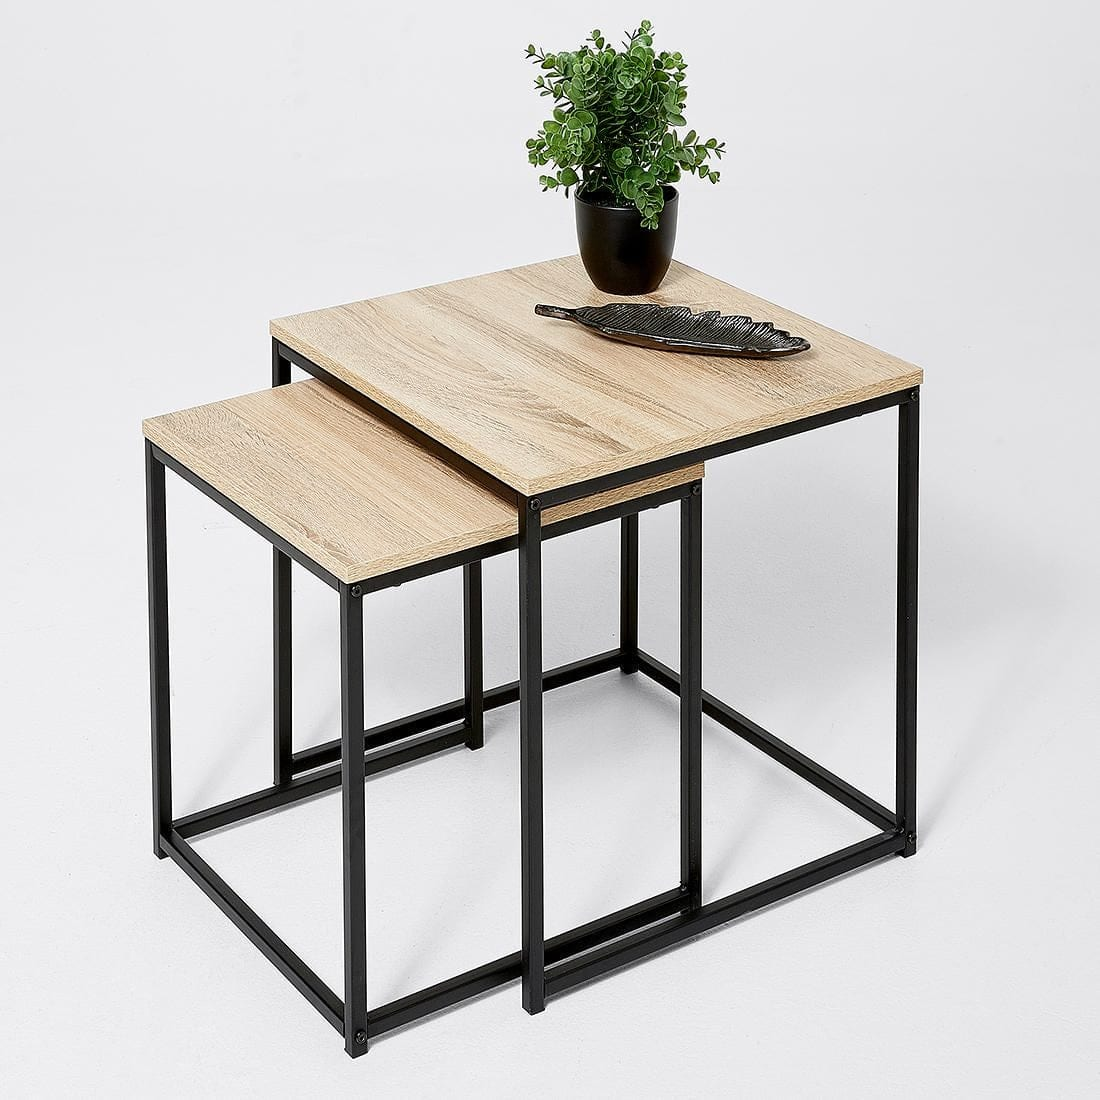 Target Atticus Nesting Coffee Table Ifmal Preorder